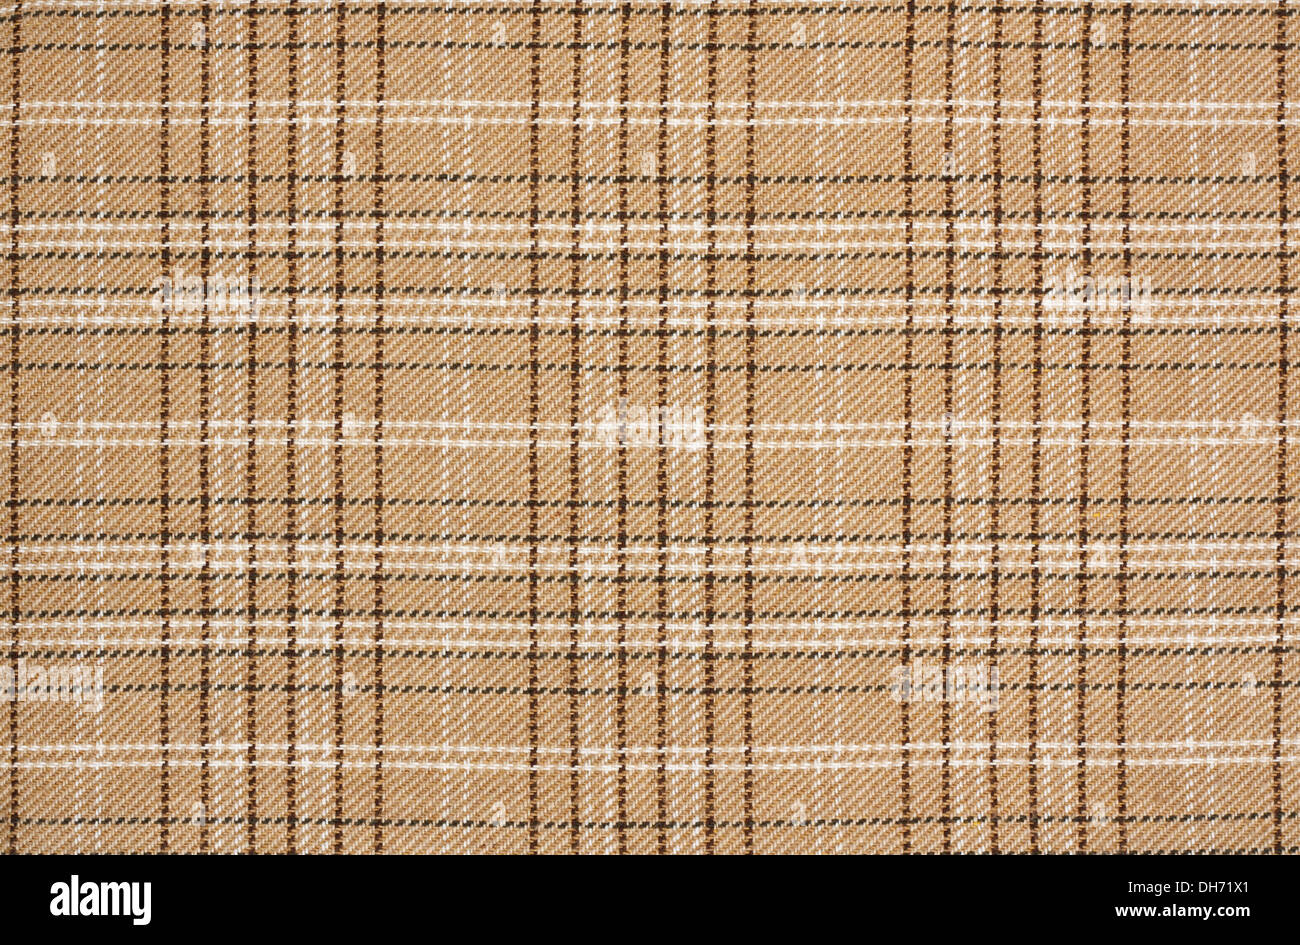 beige tartan background a checked plaid weave pattern with beige, brown, black and white - Stock Image